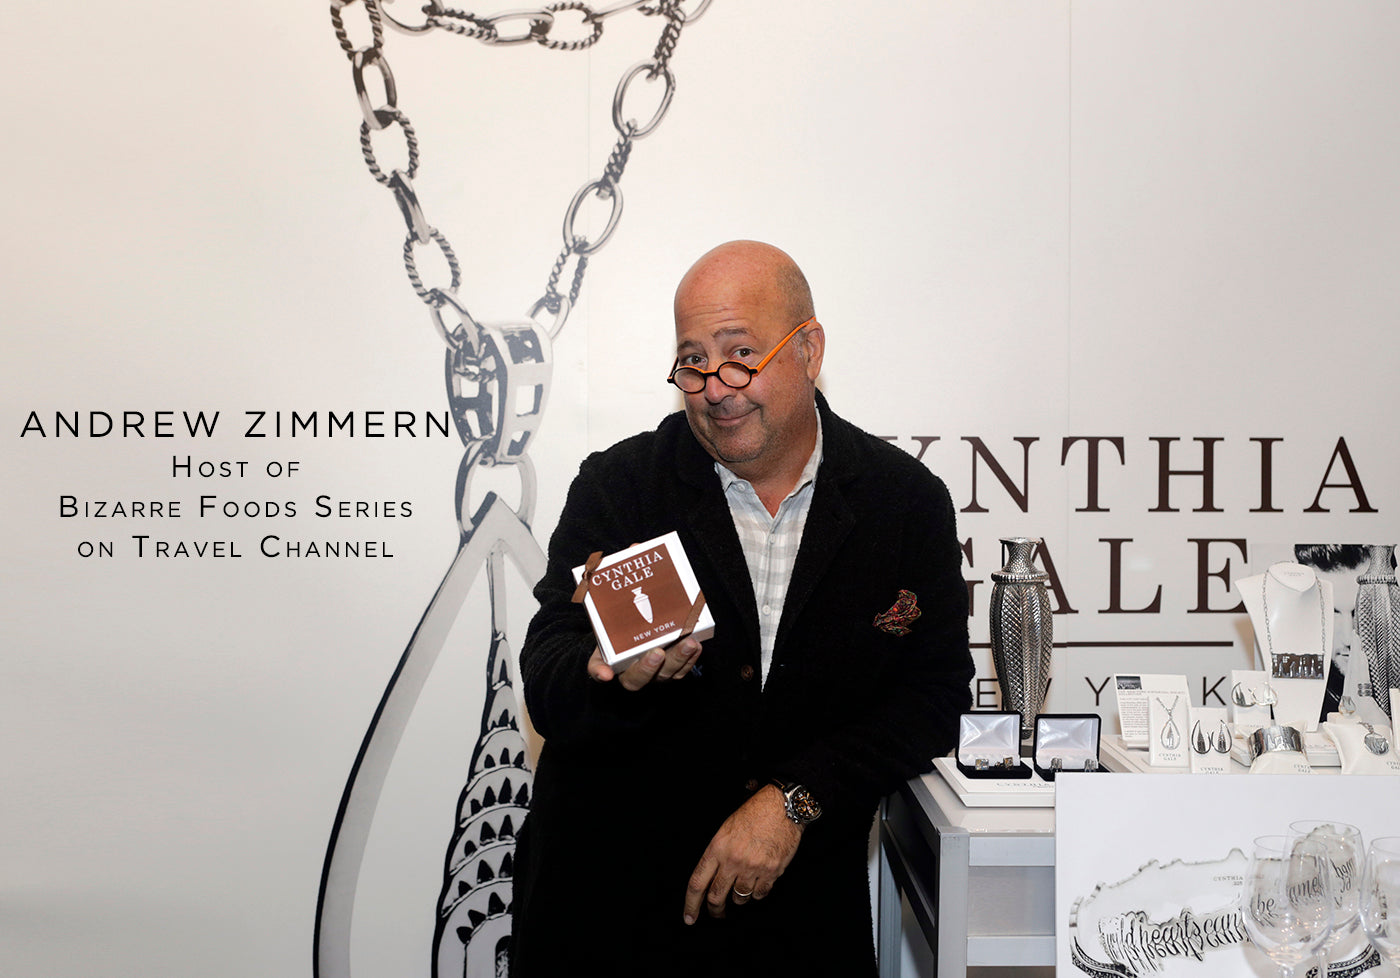 Andrew Zimmern fashion style